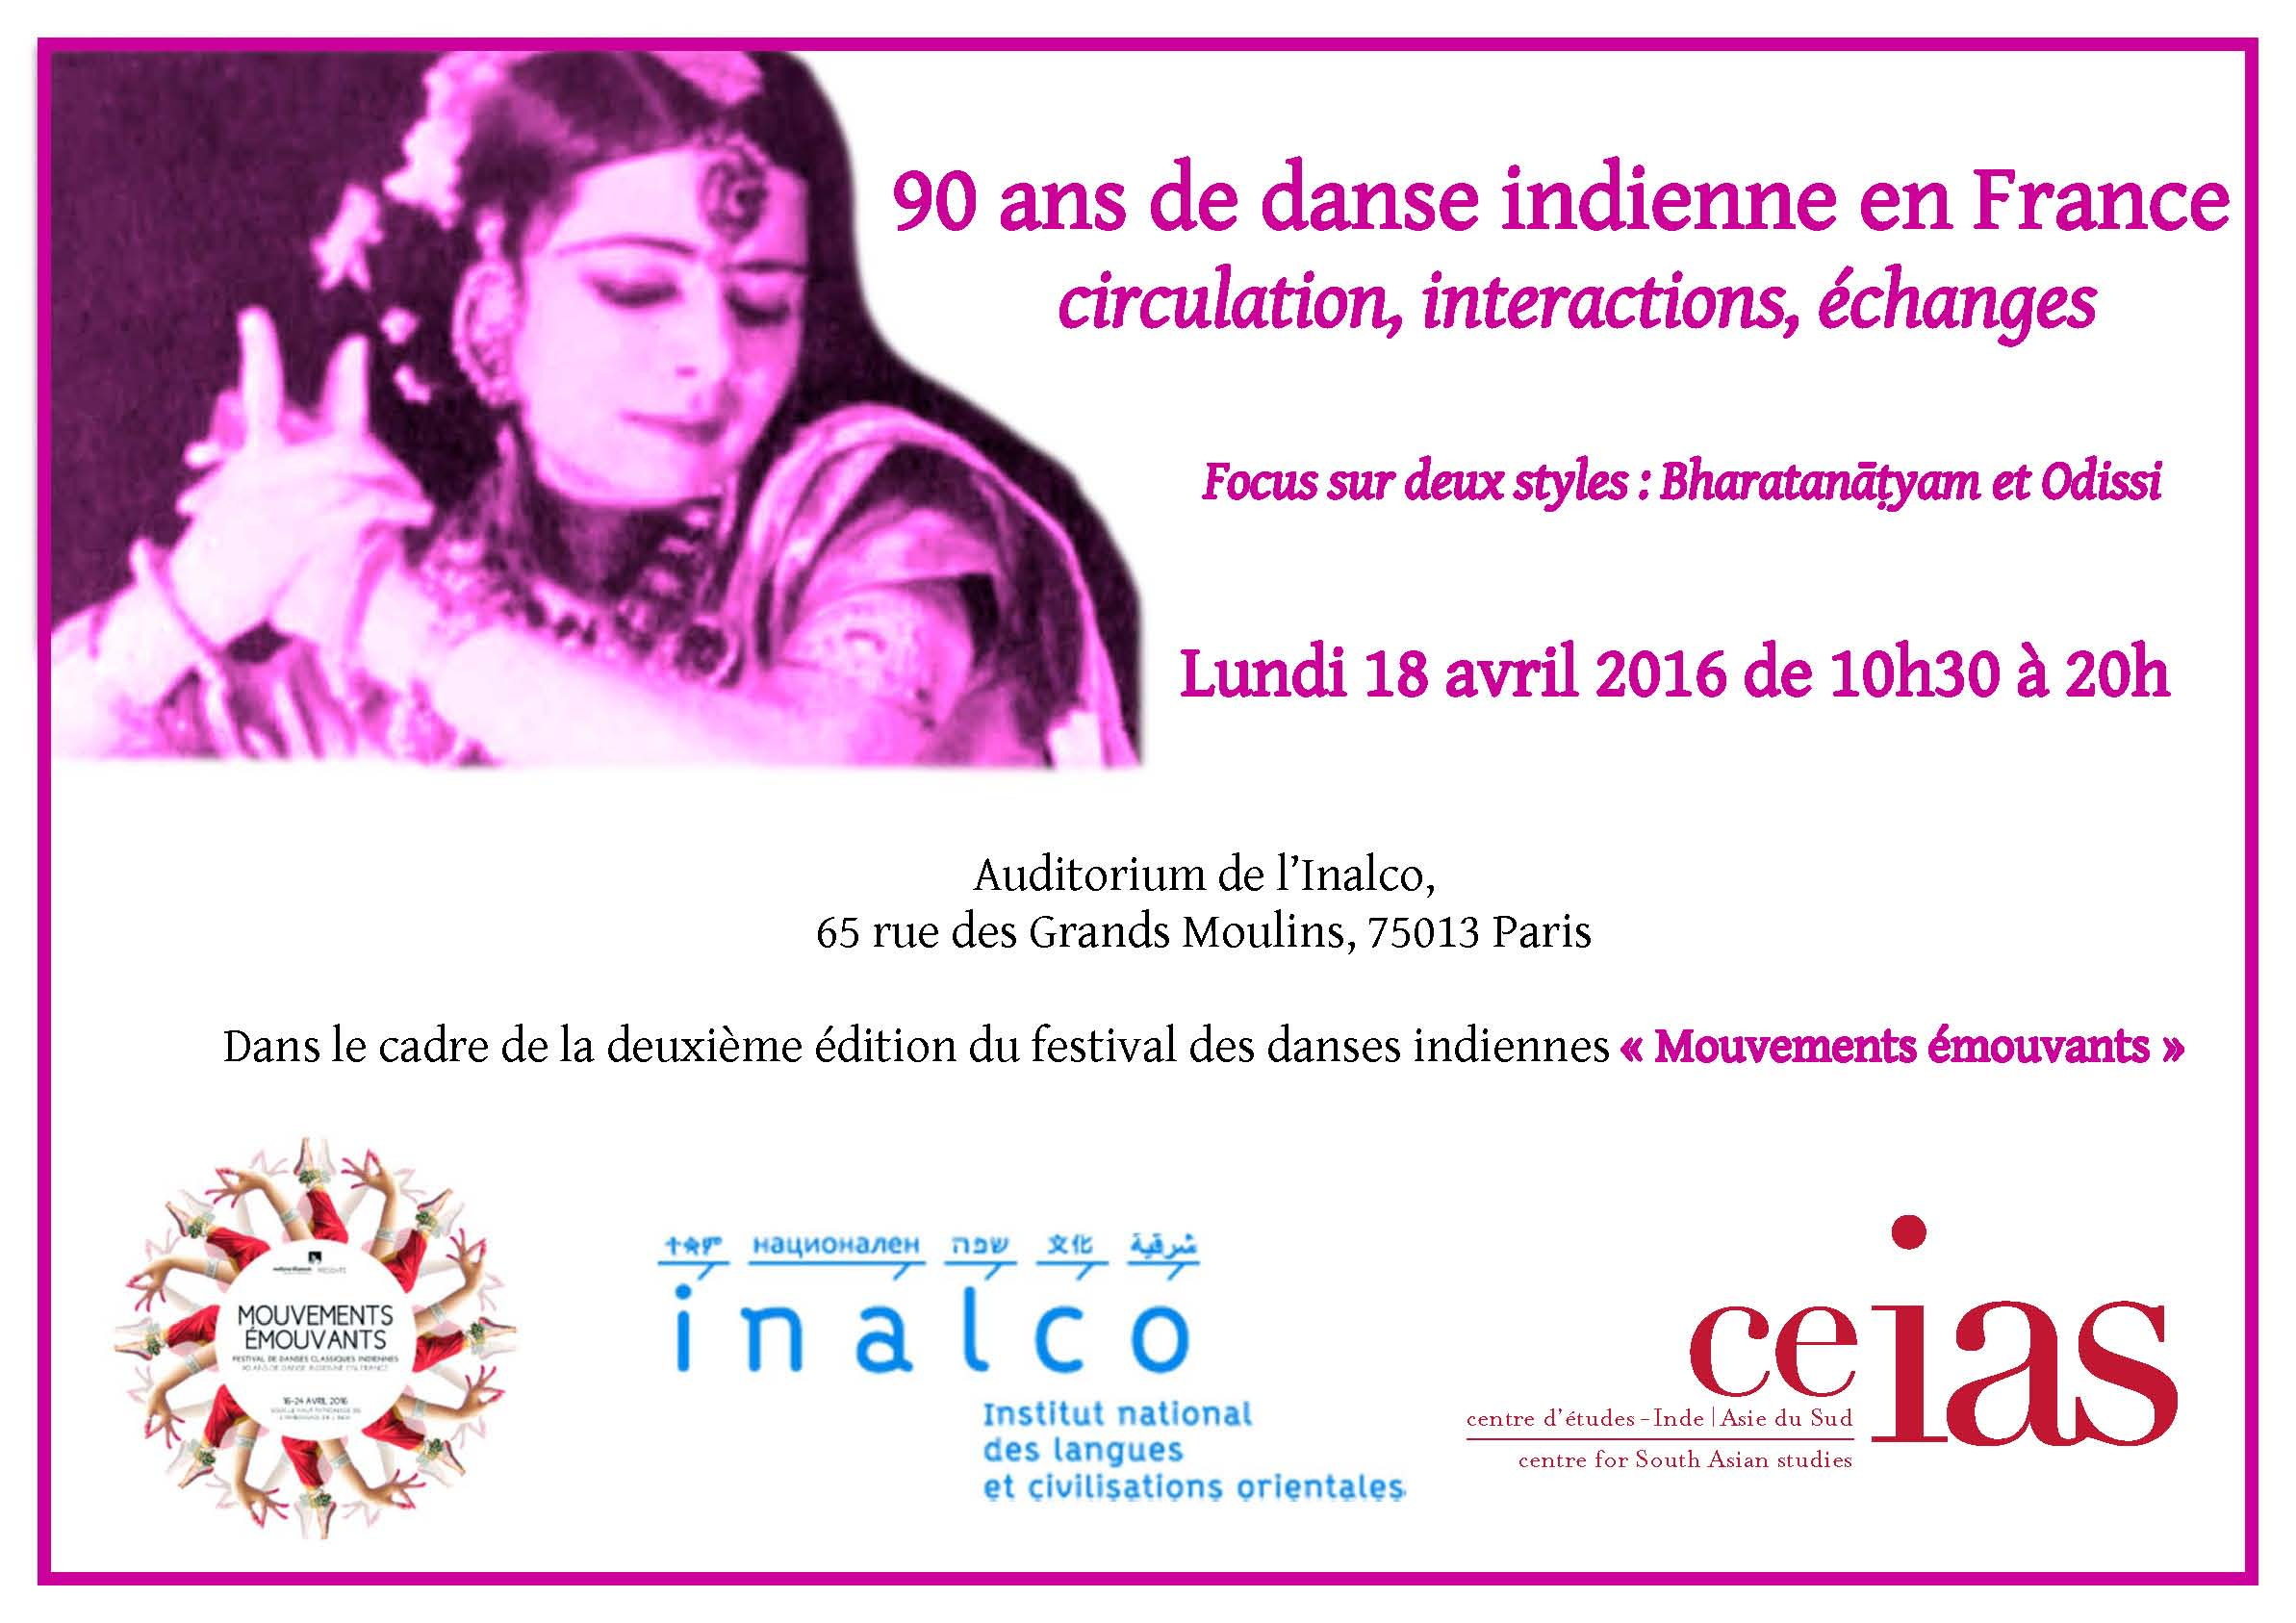 90 ans de danse indienne en France : circulation, interactions, échanges